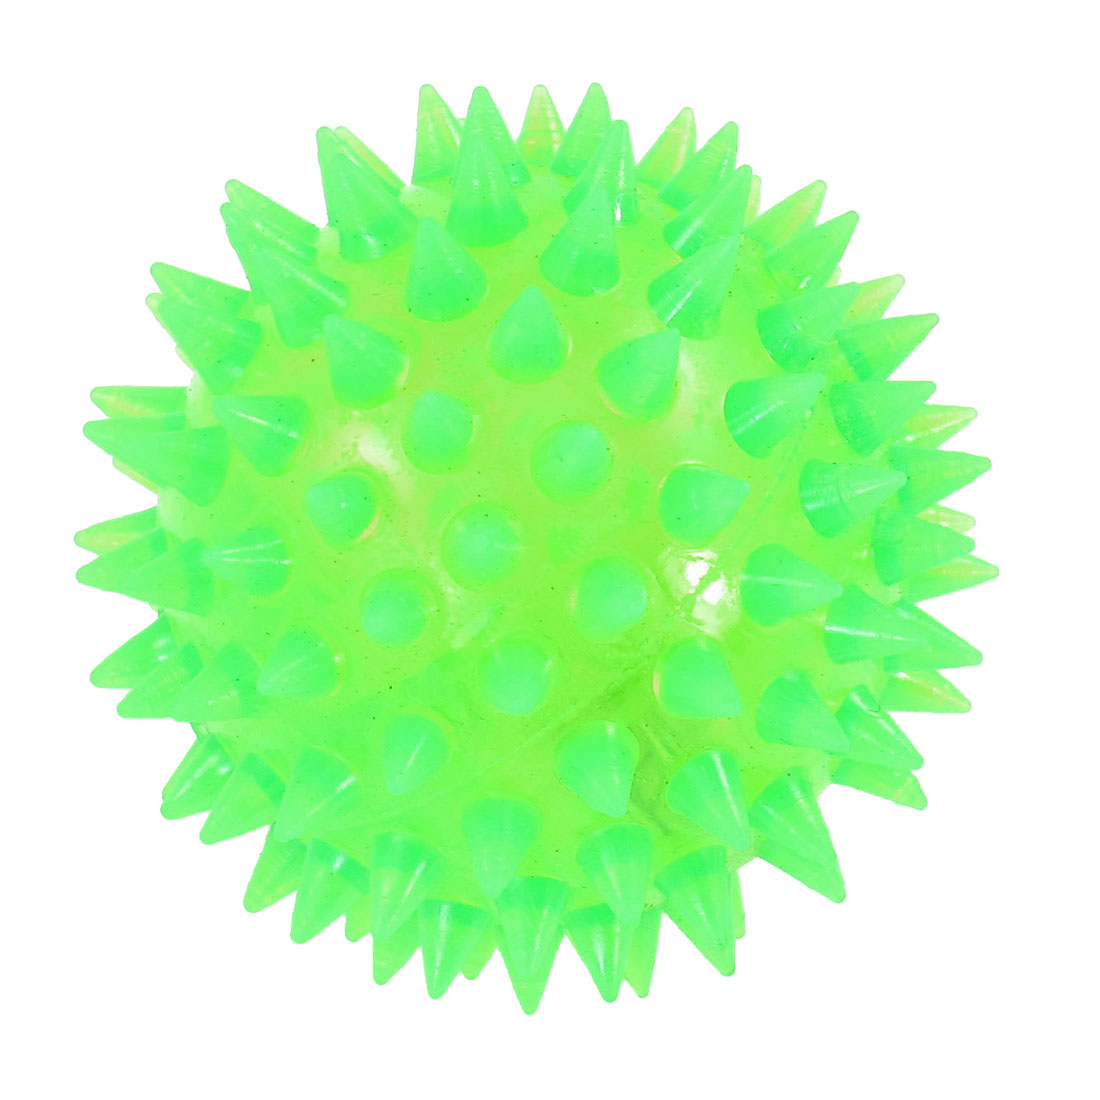 Green Textured Ball Shaped Squeaky Chew Toy for Pet Dog Cat Puppy Yorkie